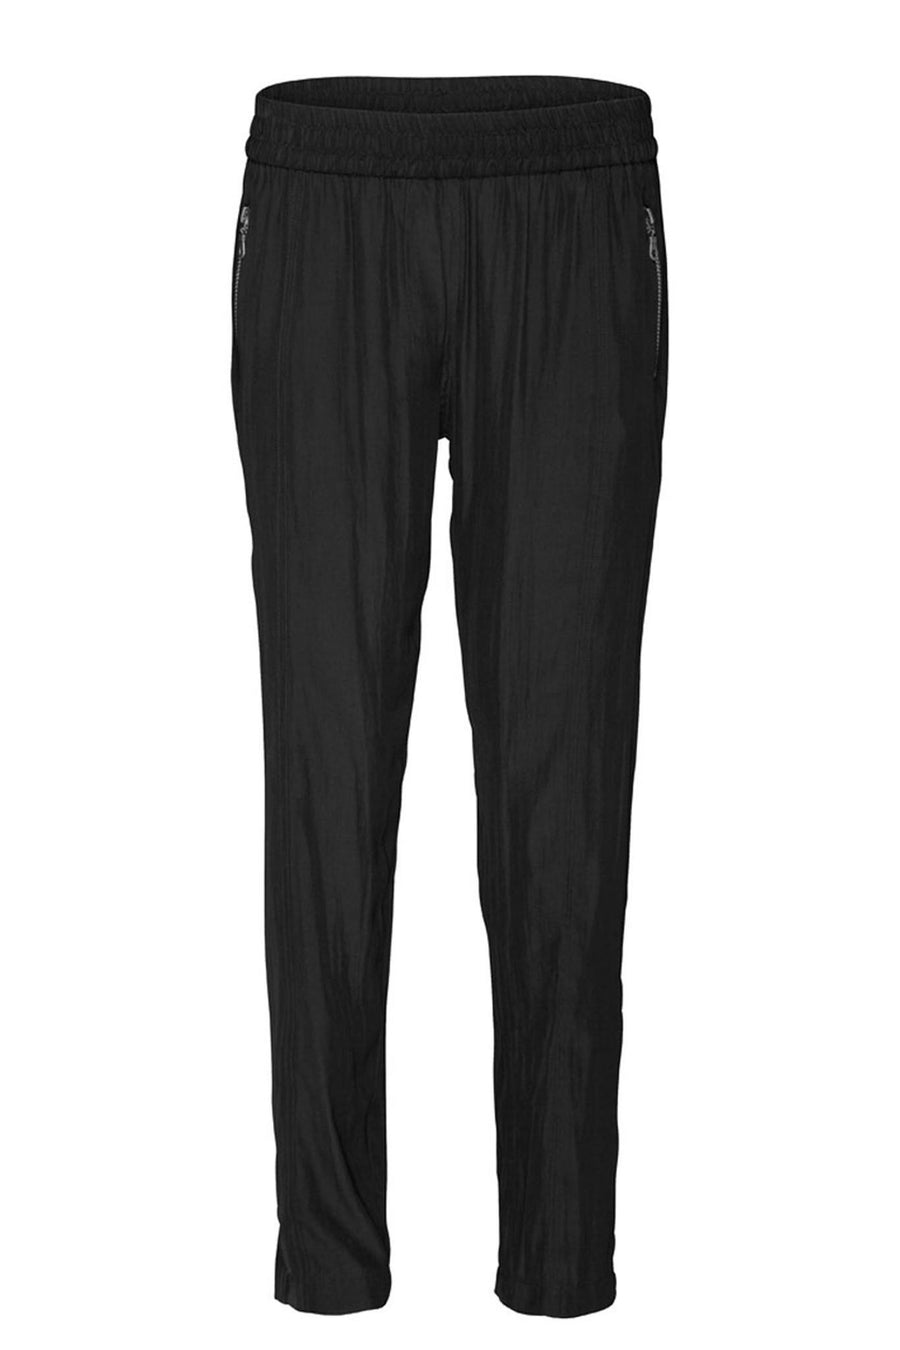 soft-zip-pant-in-black-by-mela-purdie